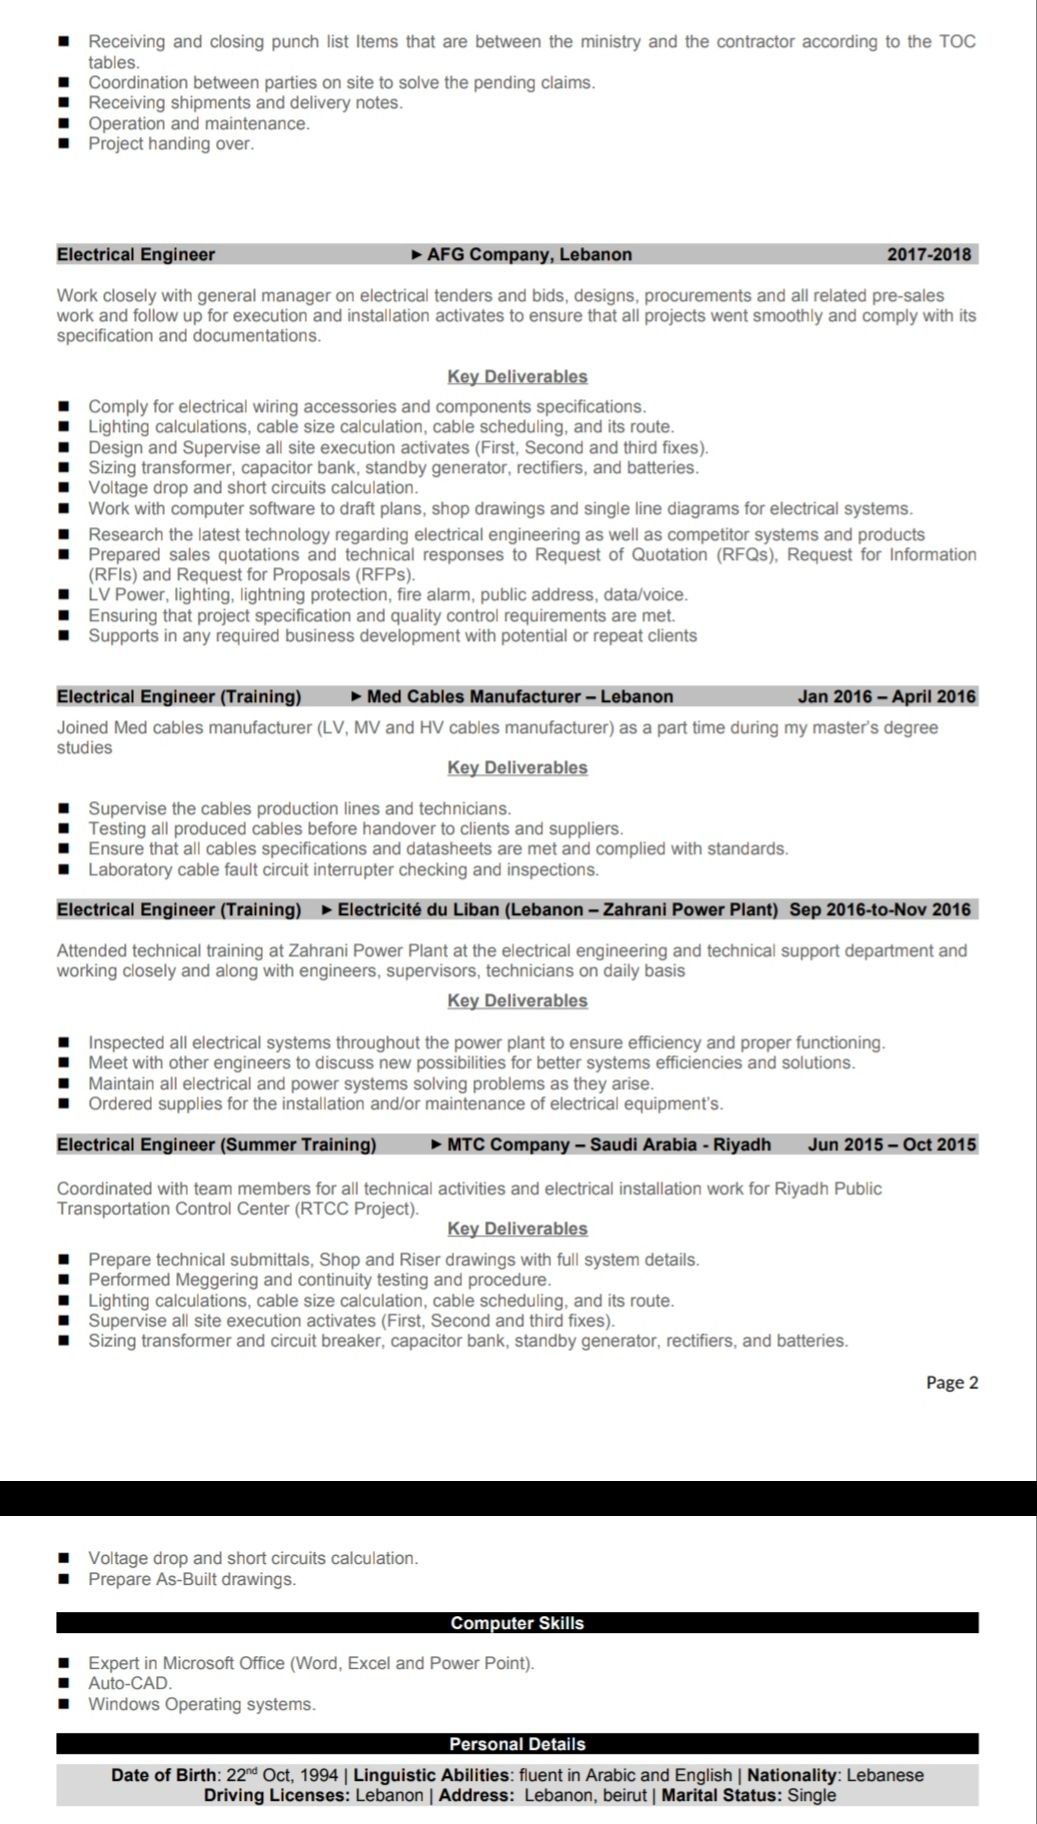 Electrical and Power Engineer looking for a better job